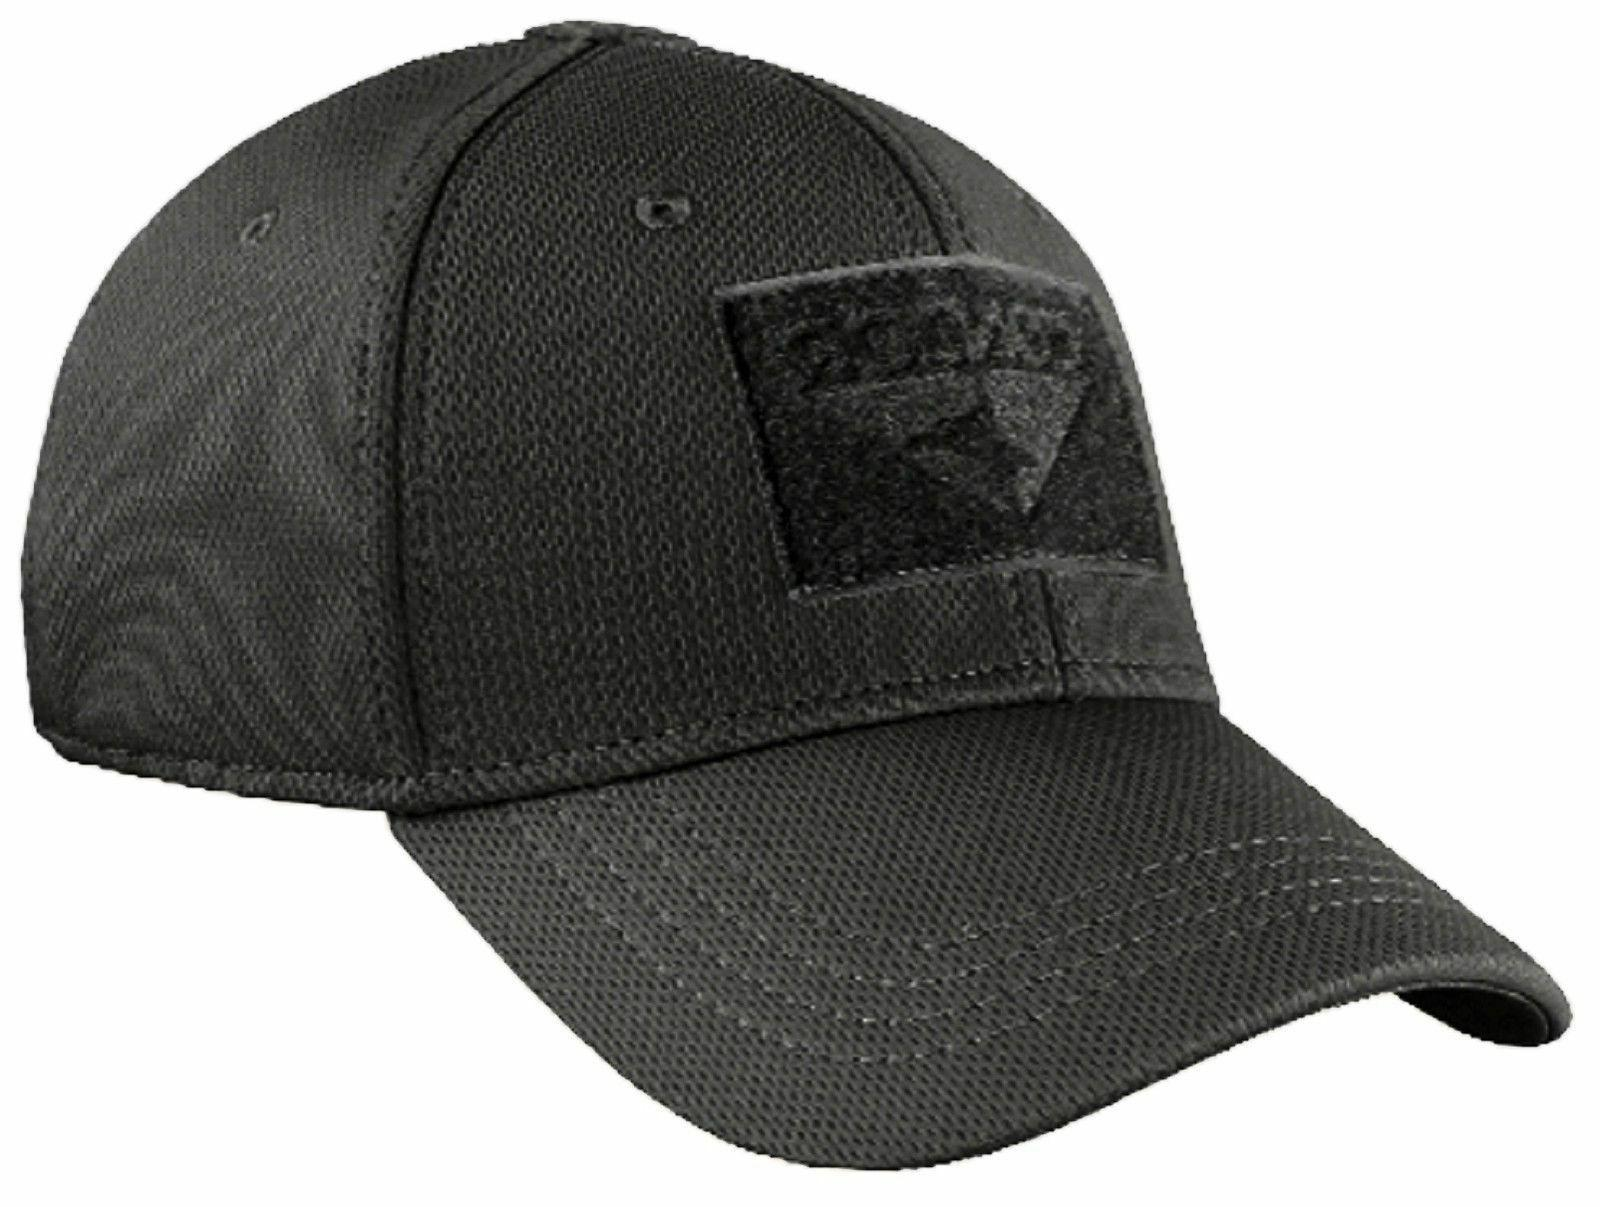 Condor Tactical Fit Military Fitted Hat Cap